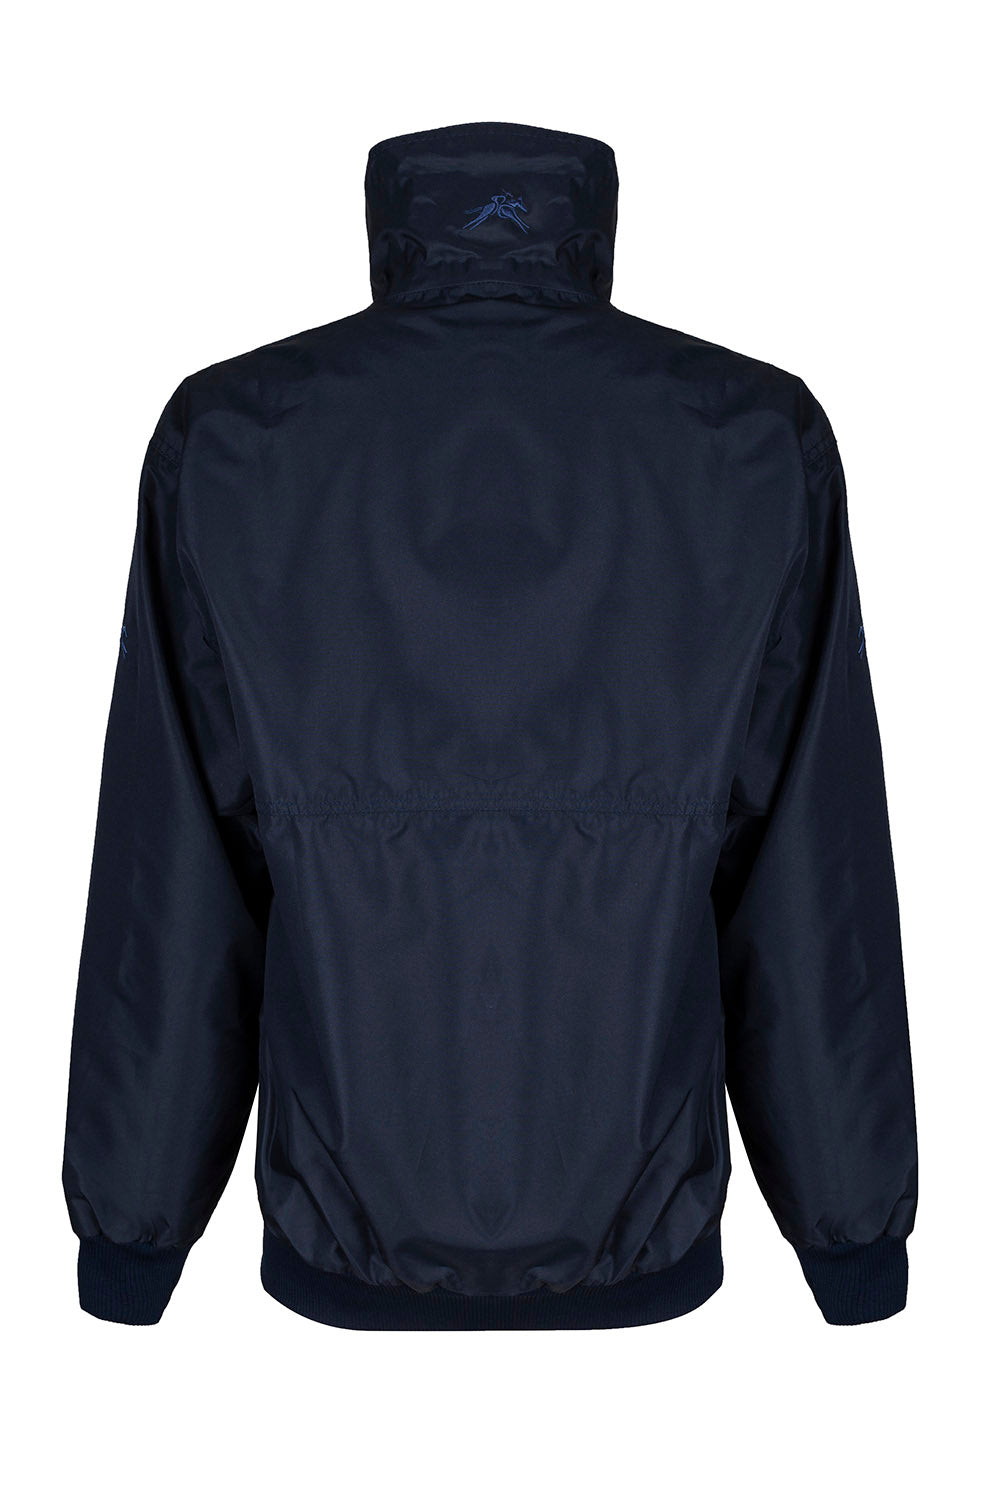 The PC Lightweight Bomber Jacket - Navy